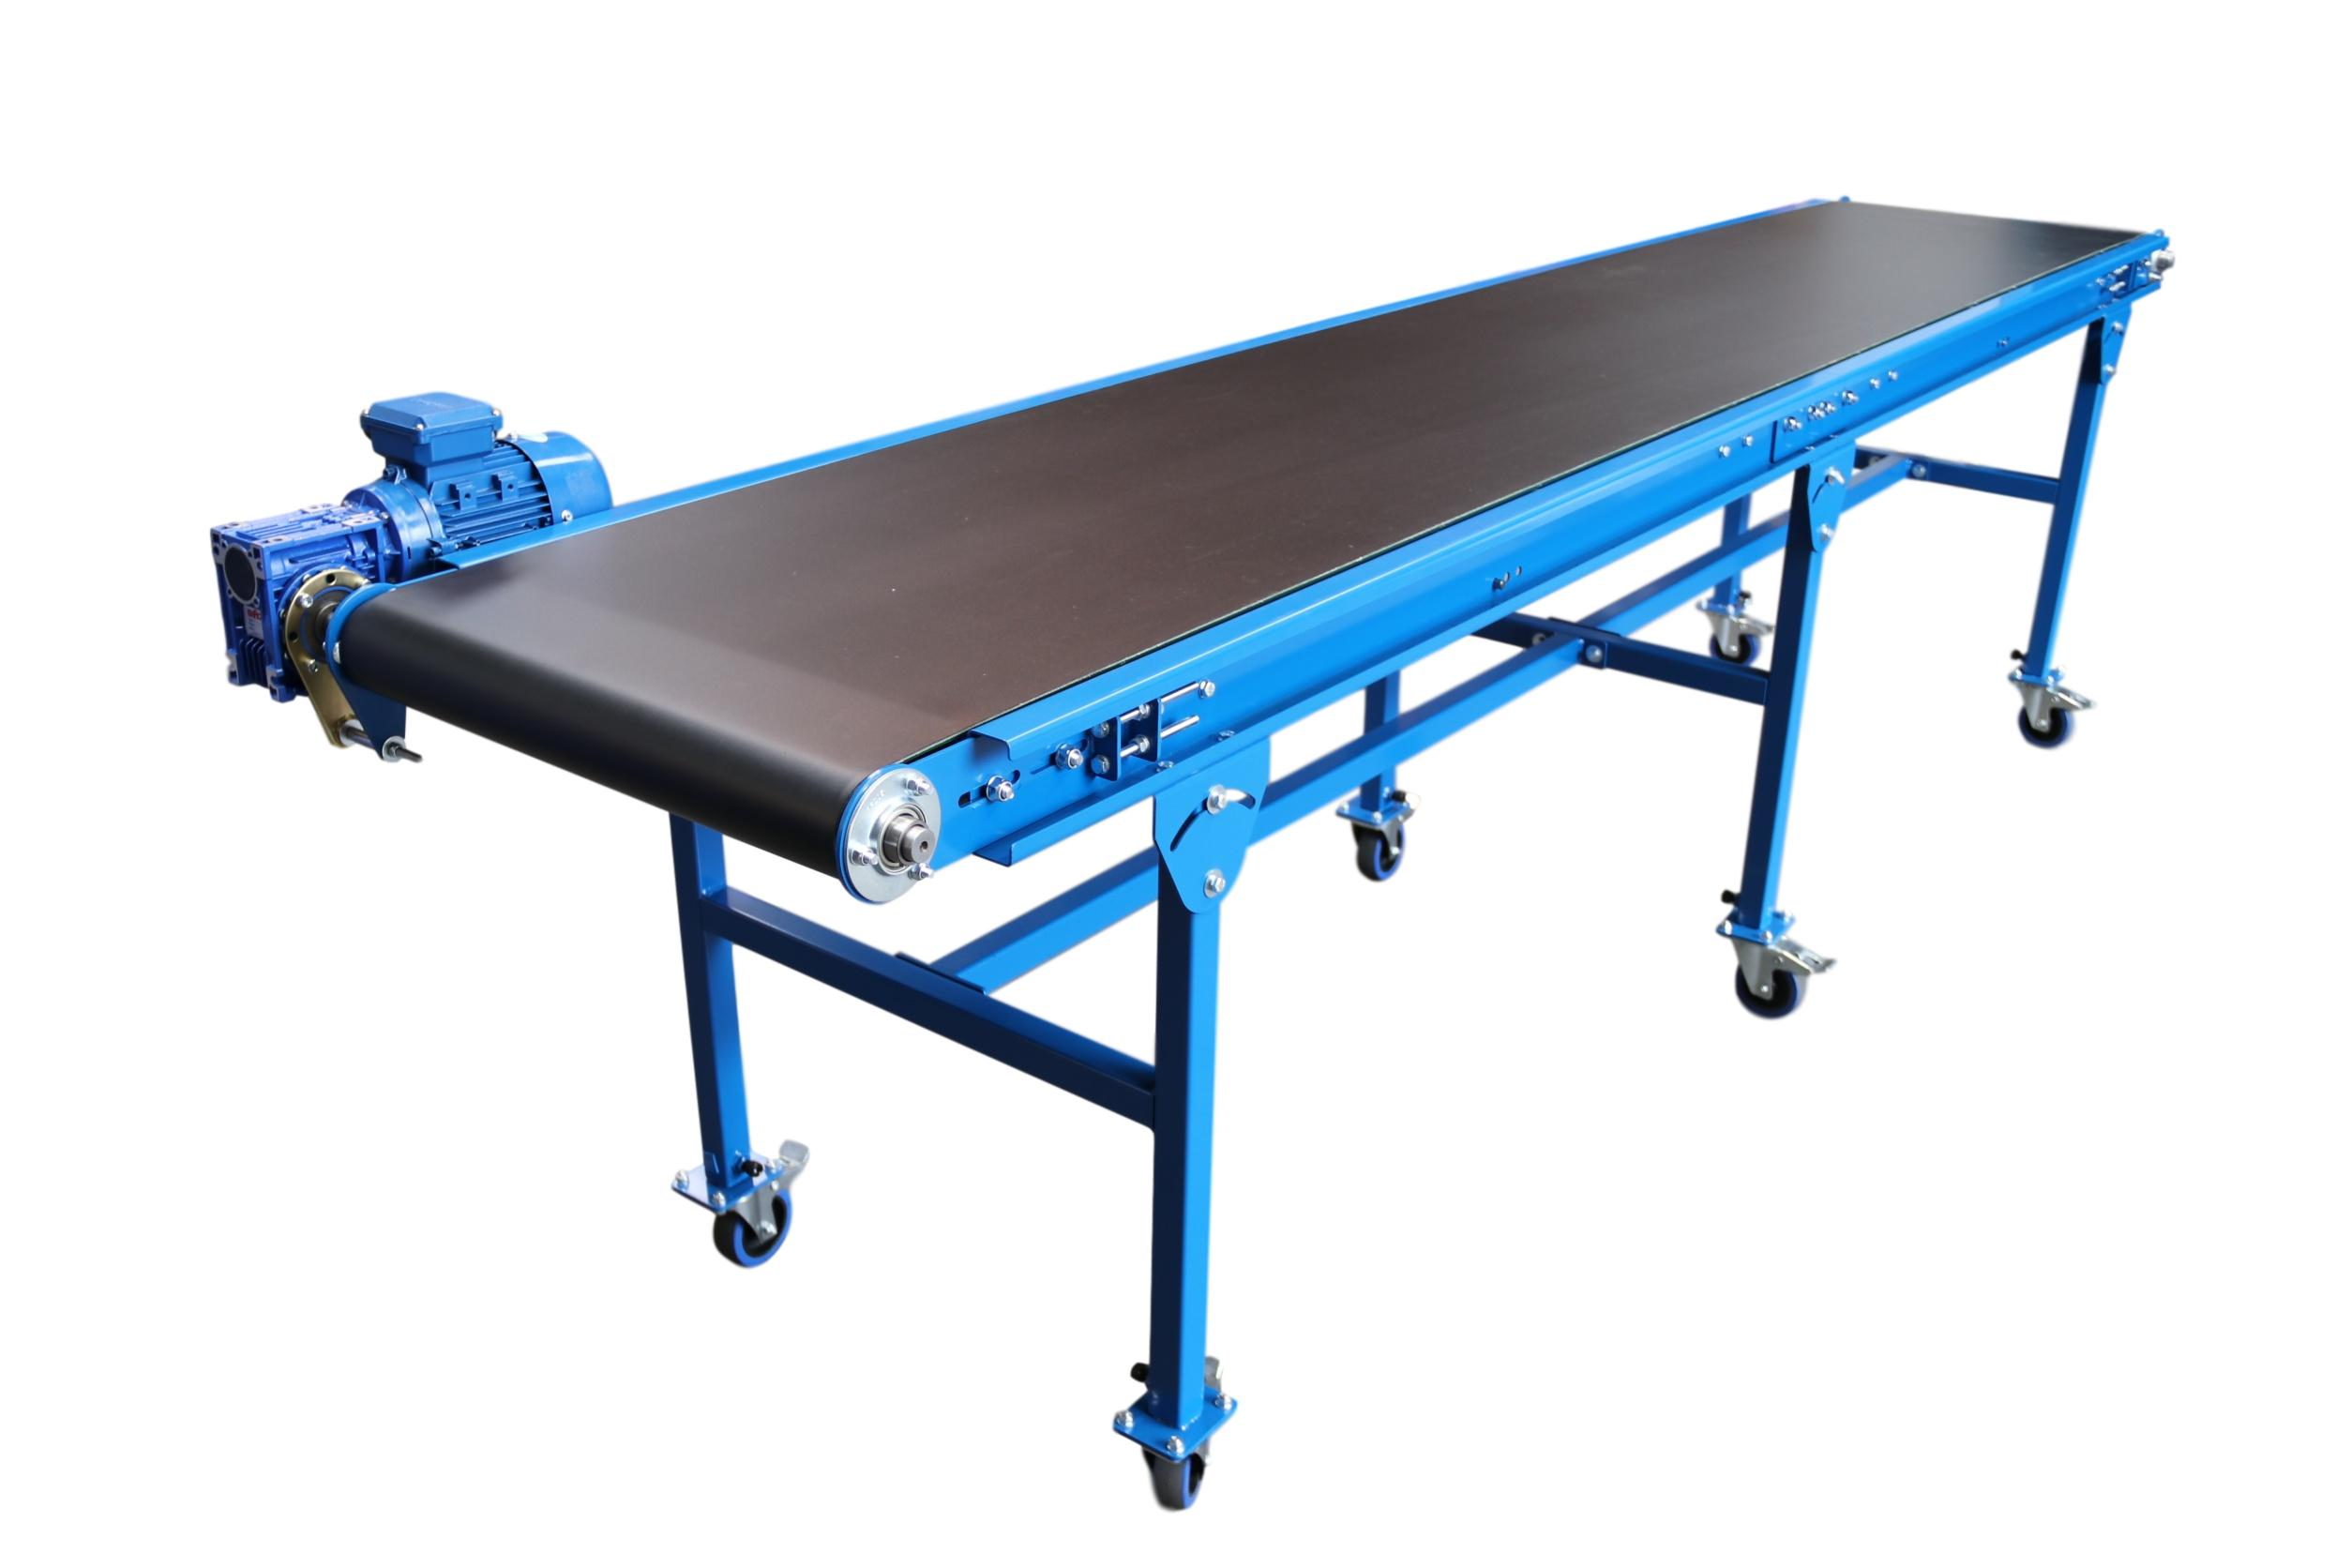 LIGHT DUTY BELT CONVEYORS MEDIUM DUTY BELT CONVEYOR BELT CONVEYOR SYSTEMS BELT CONVEYOR MANUFACTURERS BELT CONVEYORS CONVEYOR BELTS FOR SALE CONVEYOR PRICES